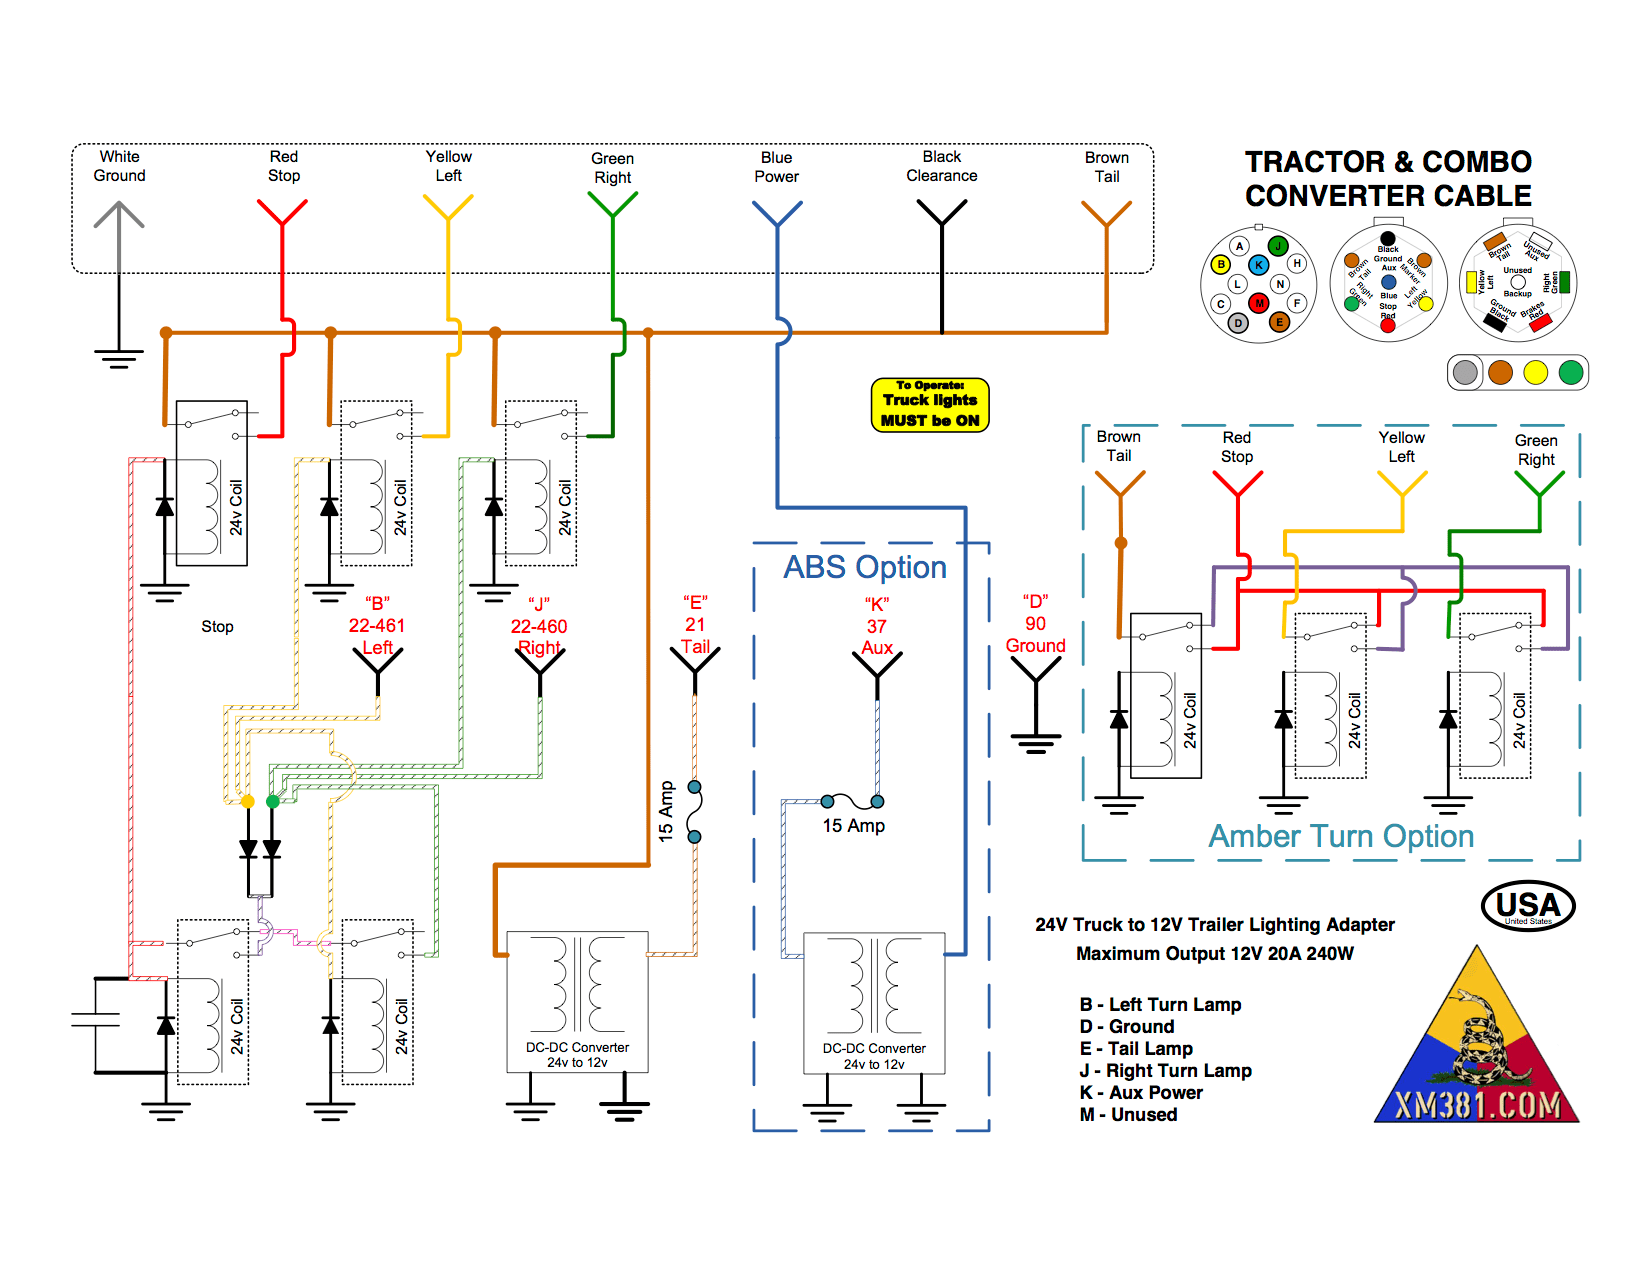 12v trailer wiring diagram 2001 gmc sonoma radio xm381 24 volt military truck to 12 civillian